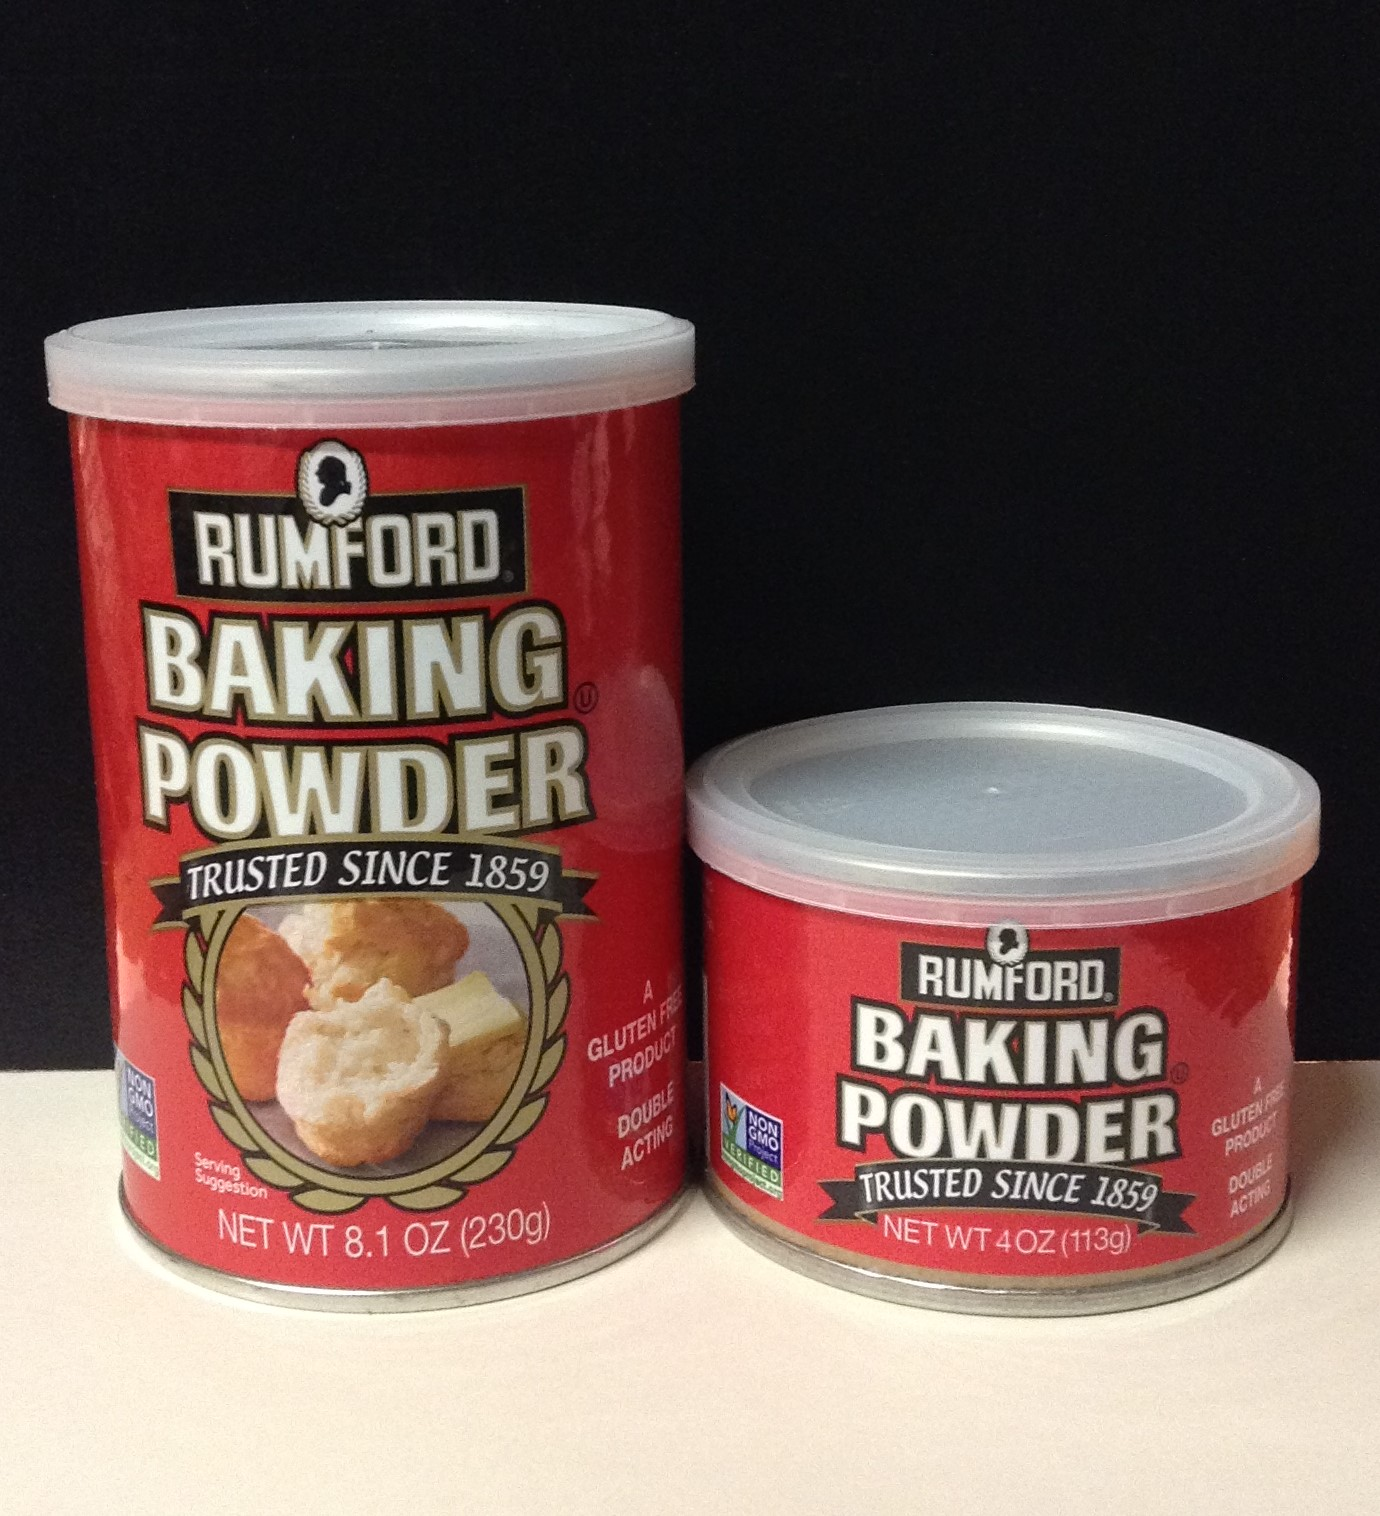 Rumford Baking Powder